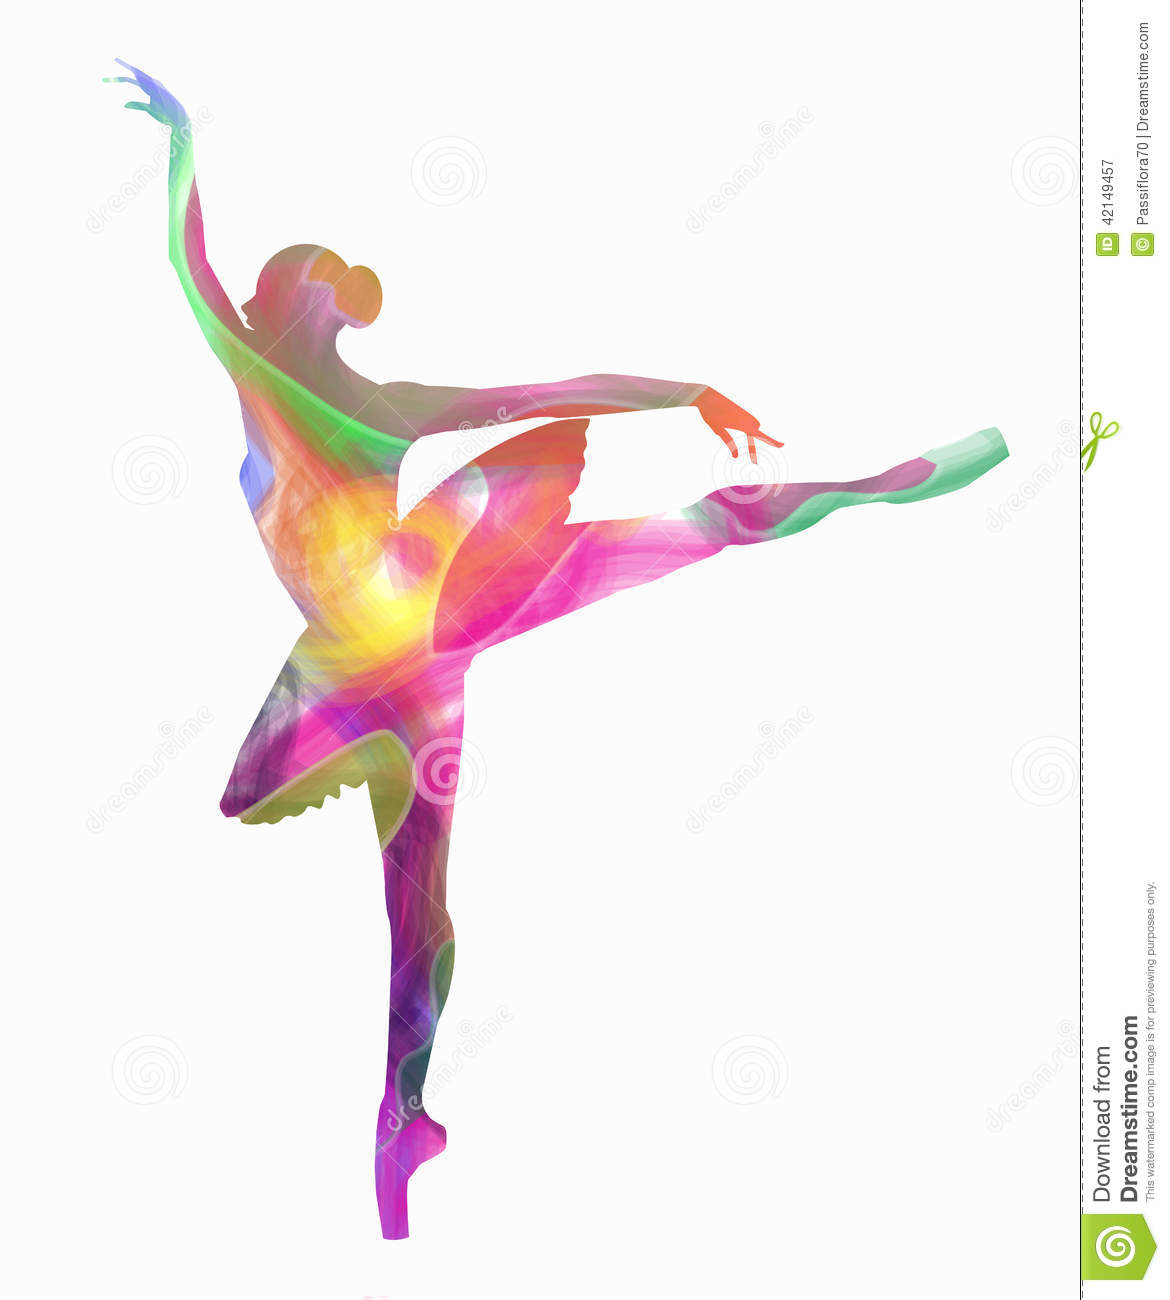 83a5cea4f Vector silhouette dancing girl on white background. Designers Also Selected  These Stock Illustrations